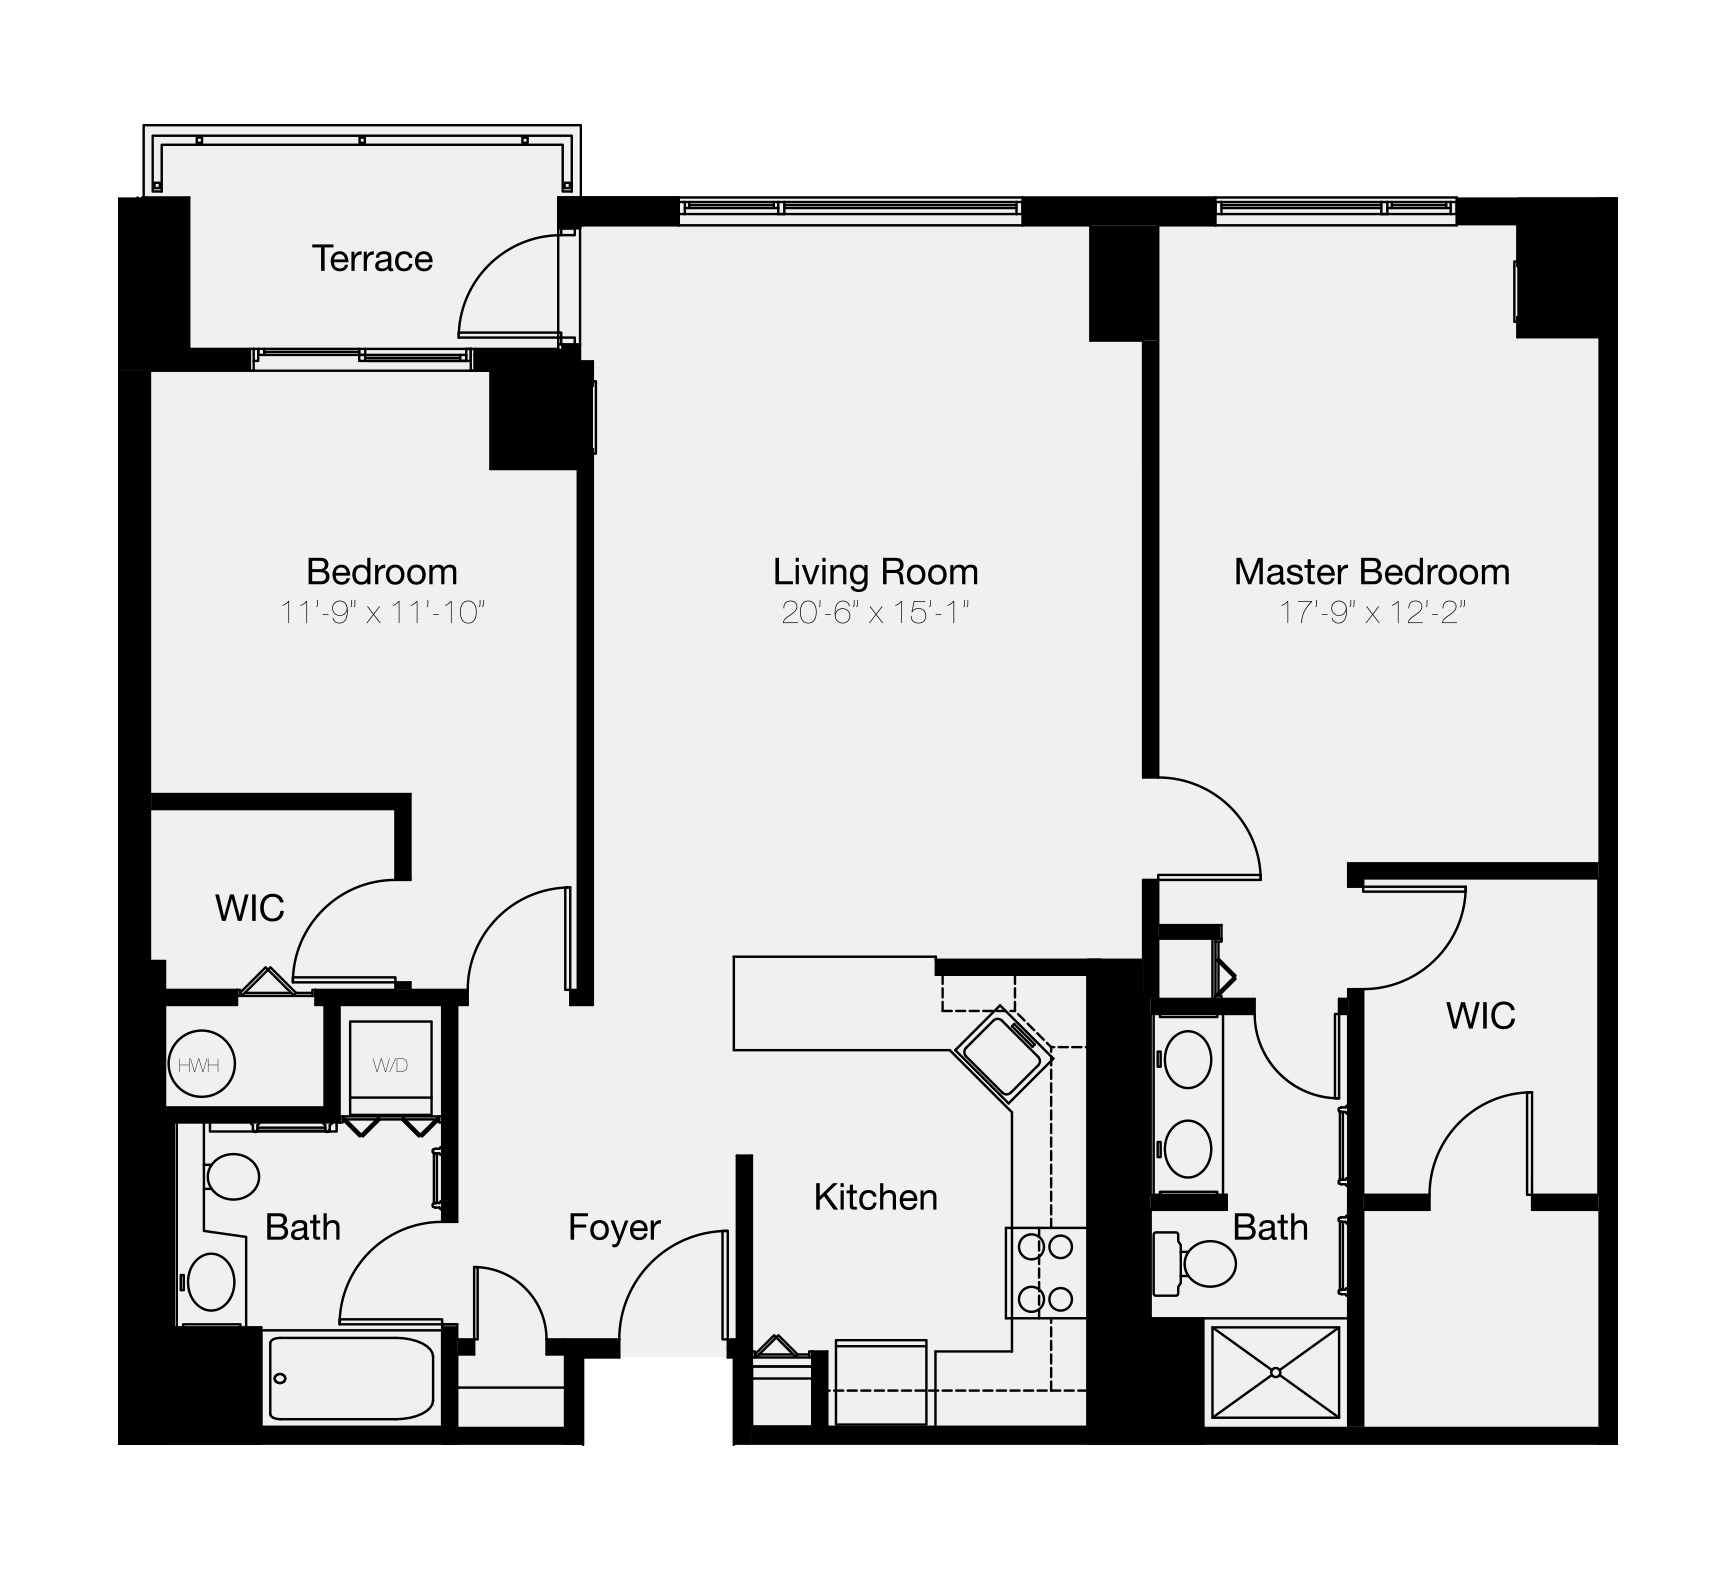 2-bedroom floor plan of Philadelphia condo for sale